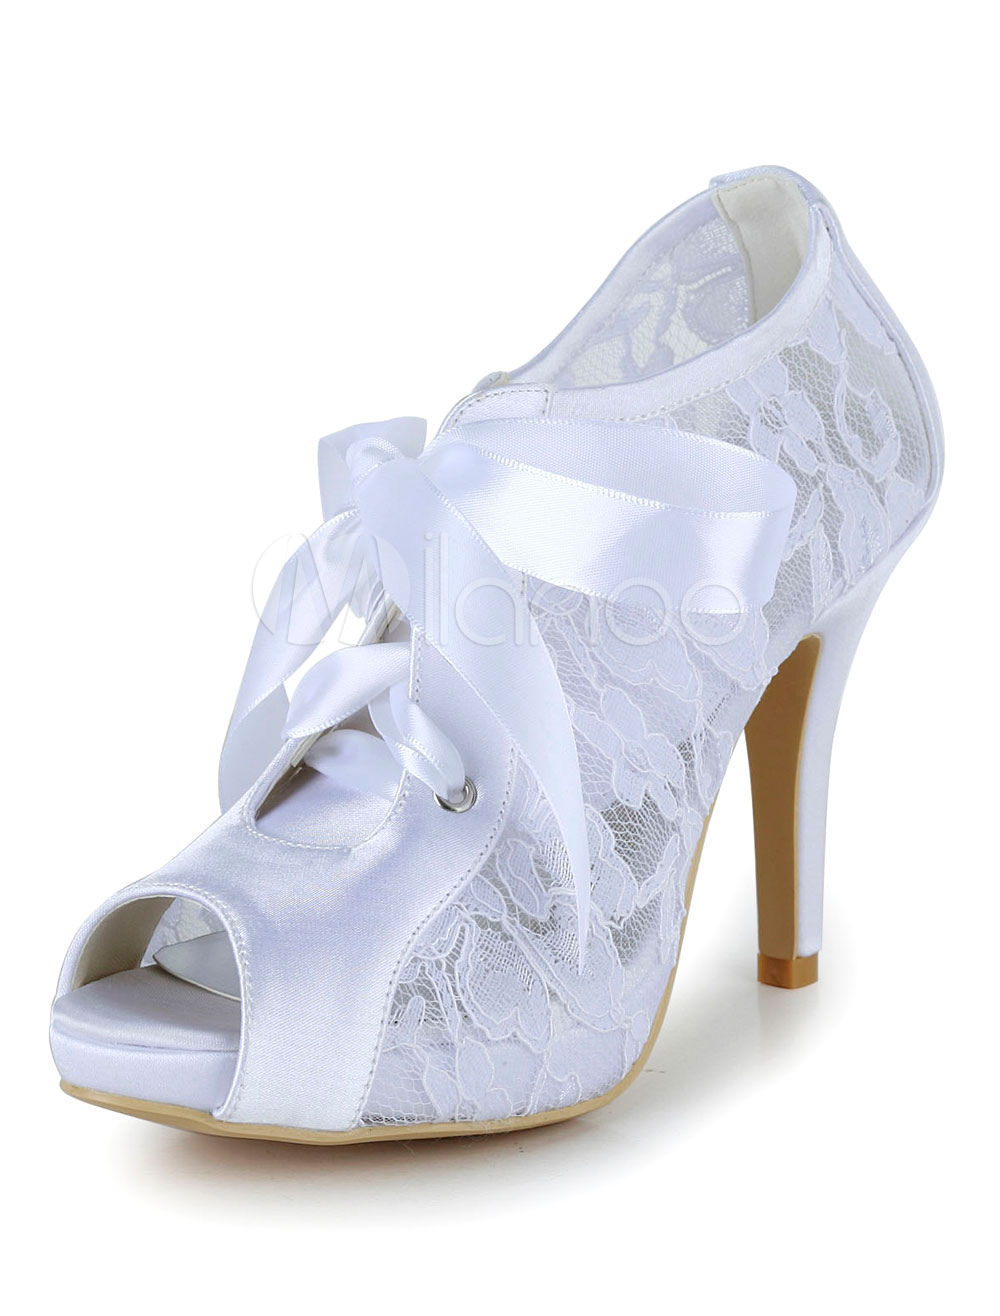 White Wedding Shoes High Heel Pumps Lace Peep Platform Bridal Shoes With Lace Up Ribbon